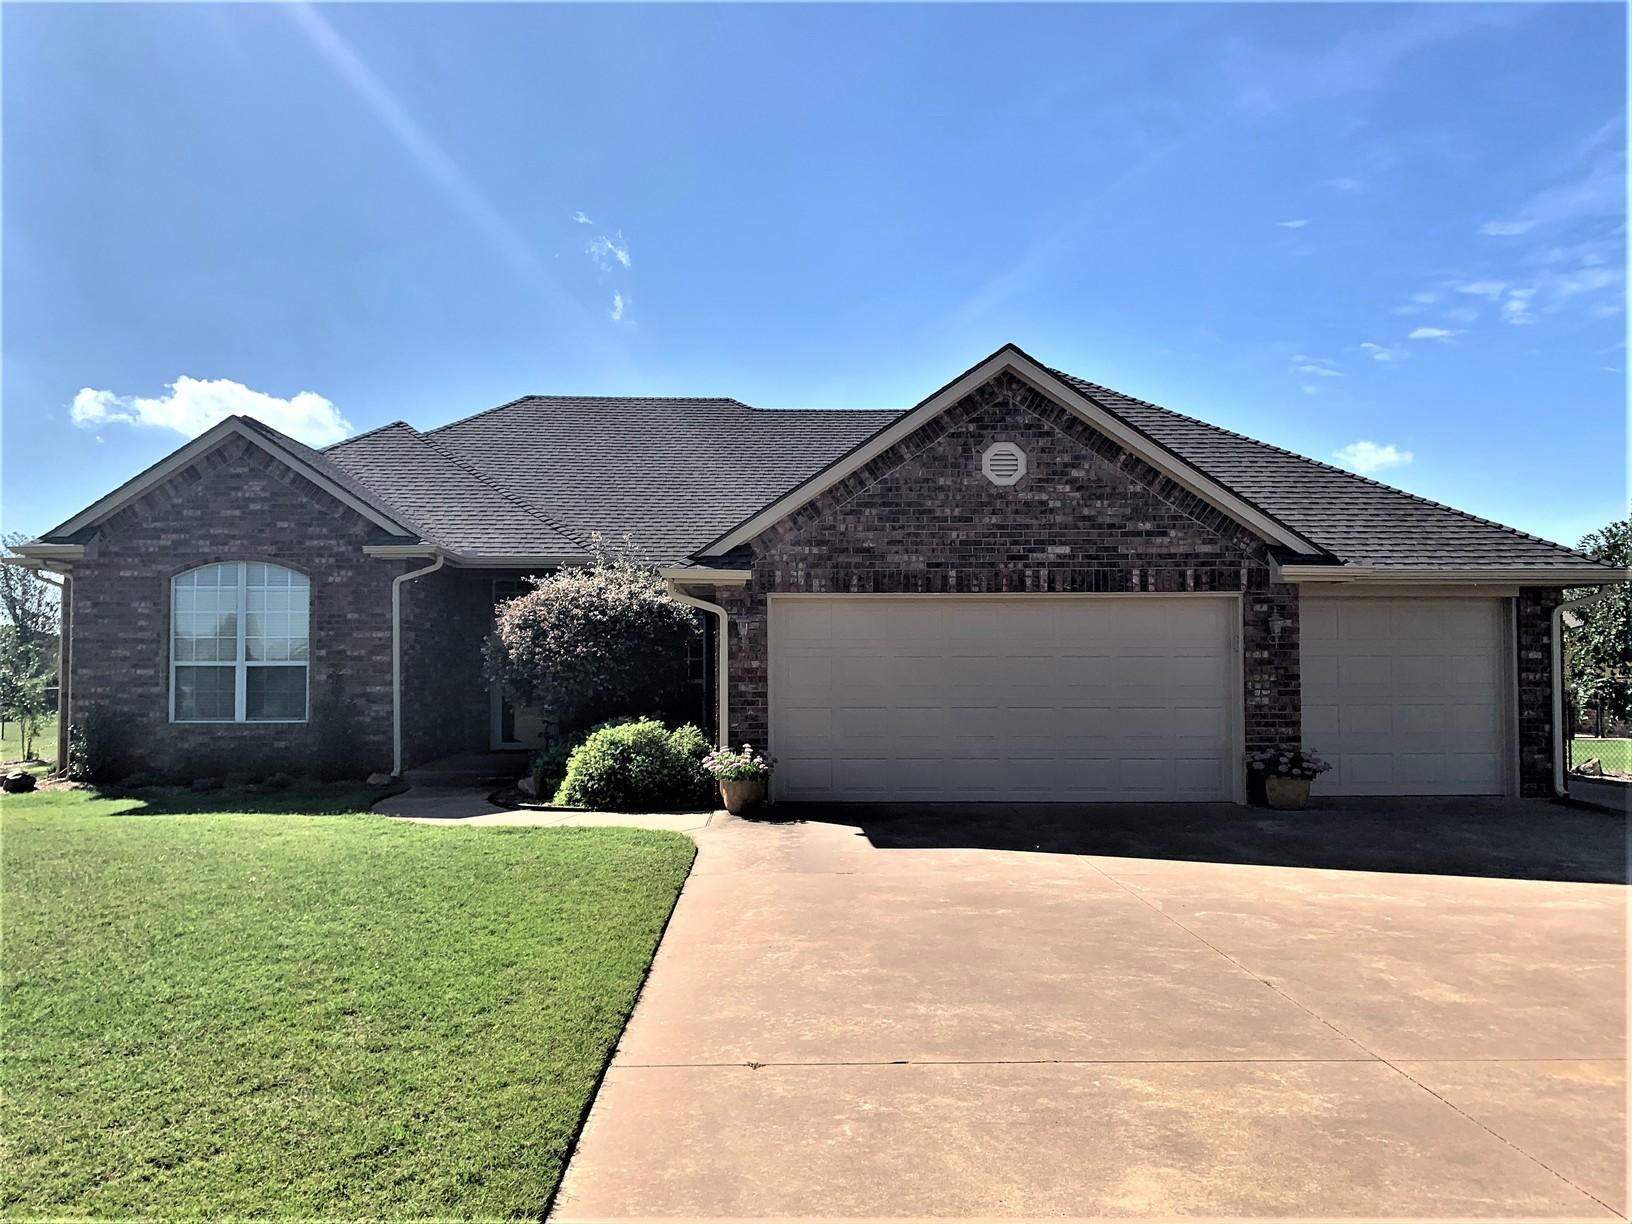 New Roof Replacement in Tuttle, OK